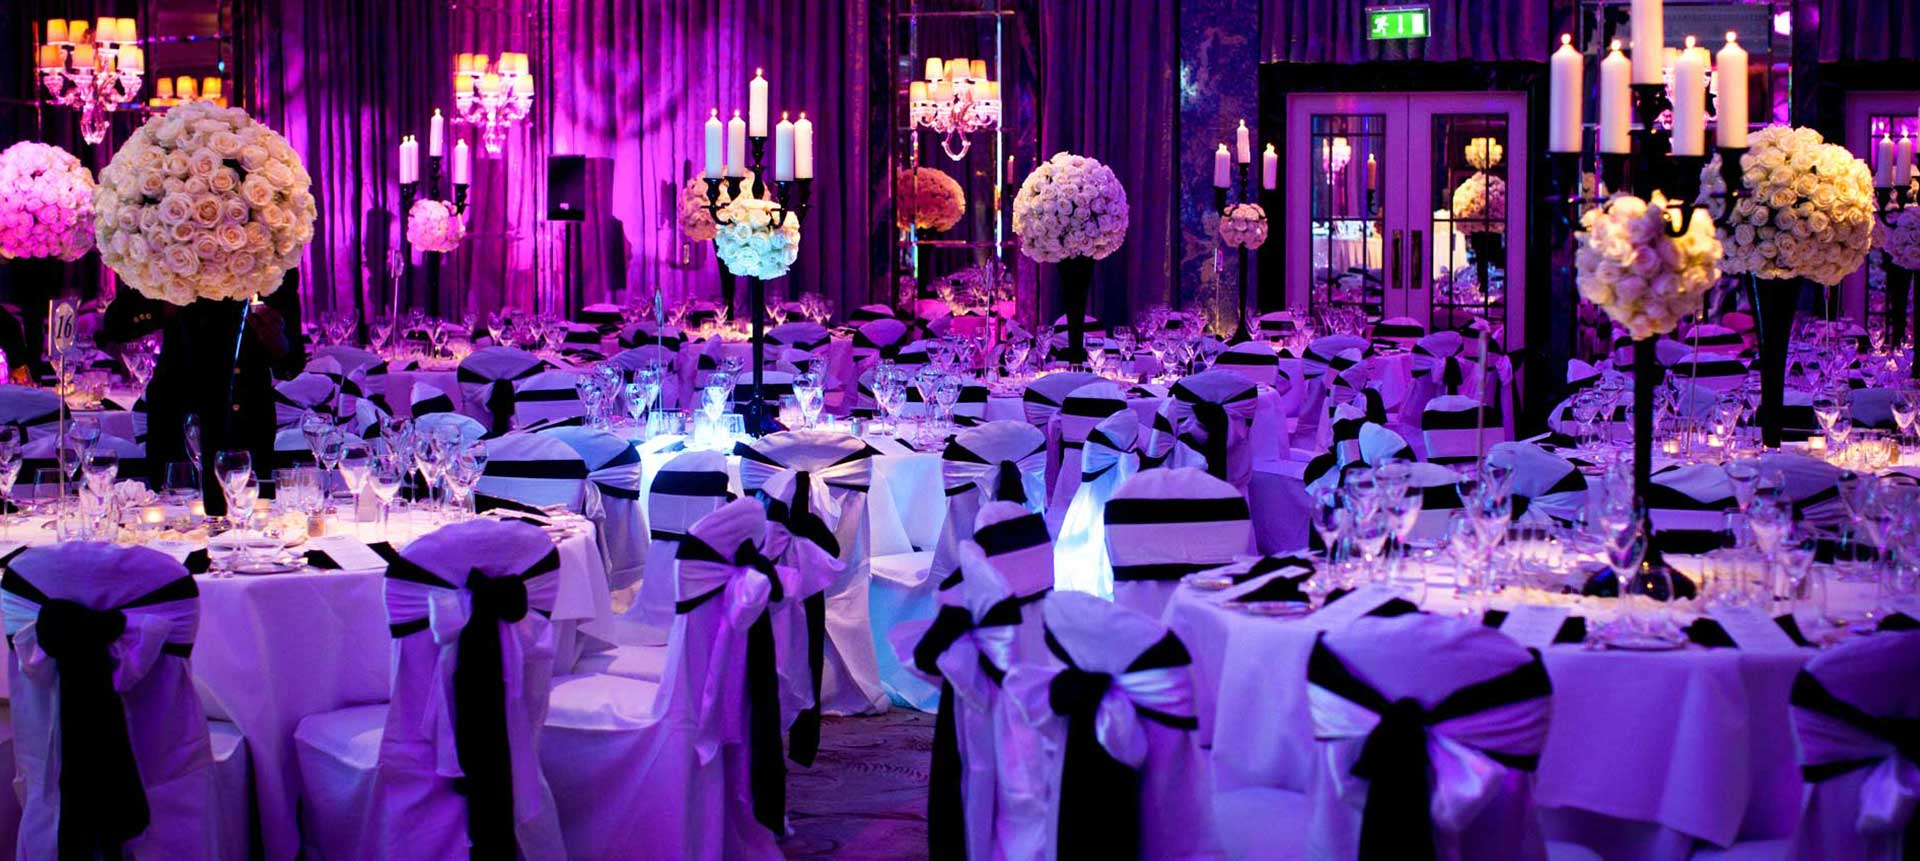 We are Event Management Specialists